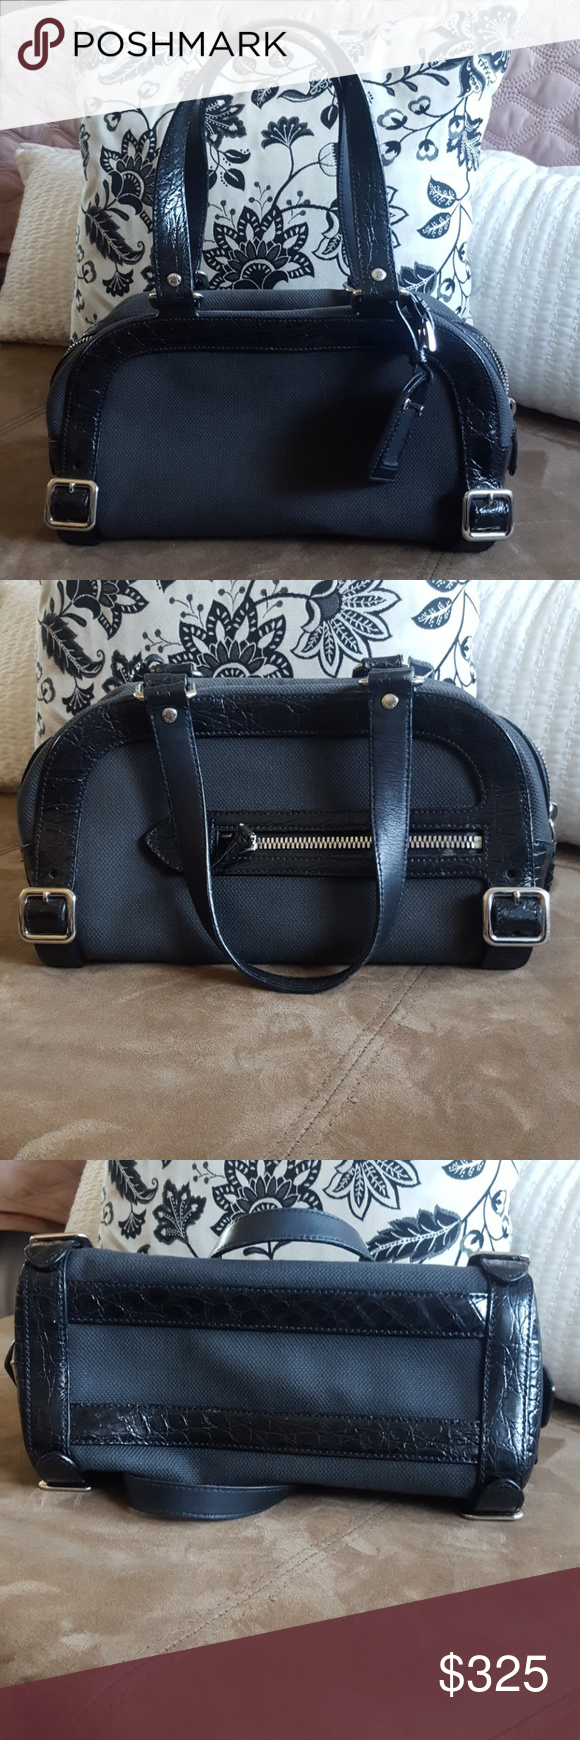 ae977b609188ec Auth Prada Canvas Alligator Charcoal Satchel Bag Prada charcoal canvas and alligator  bag in great pre-owned condition. Alligator leather trim with buckle ...